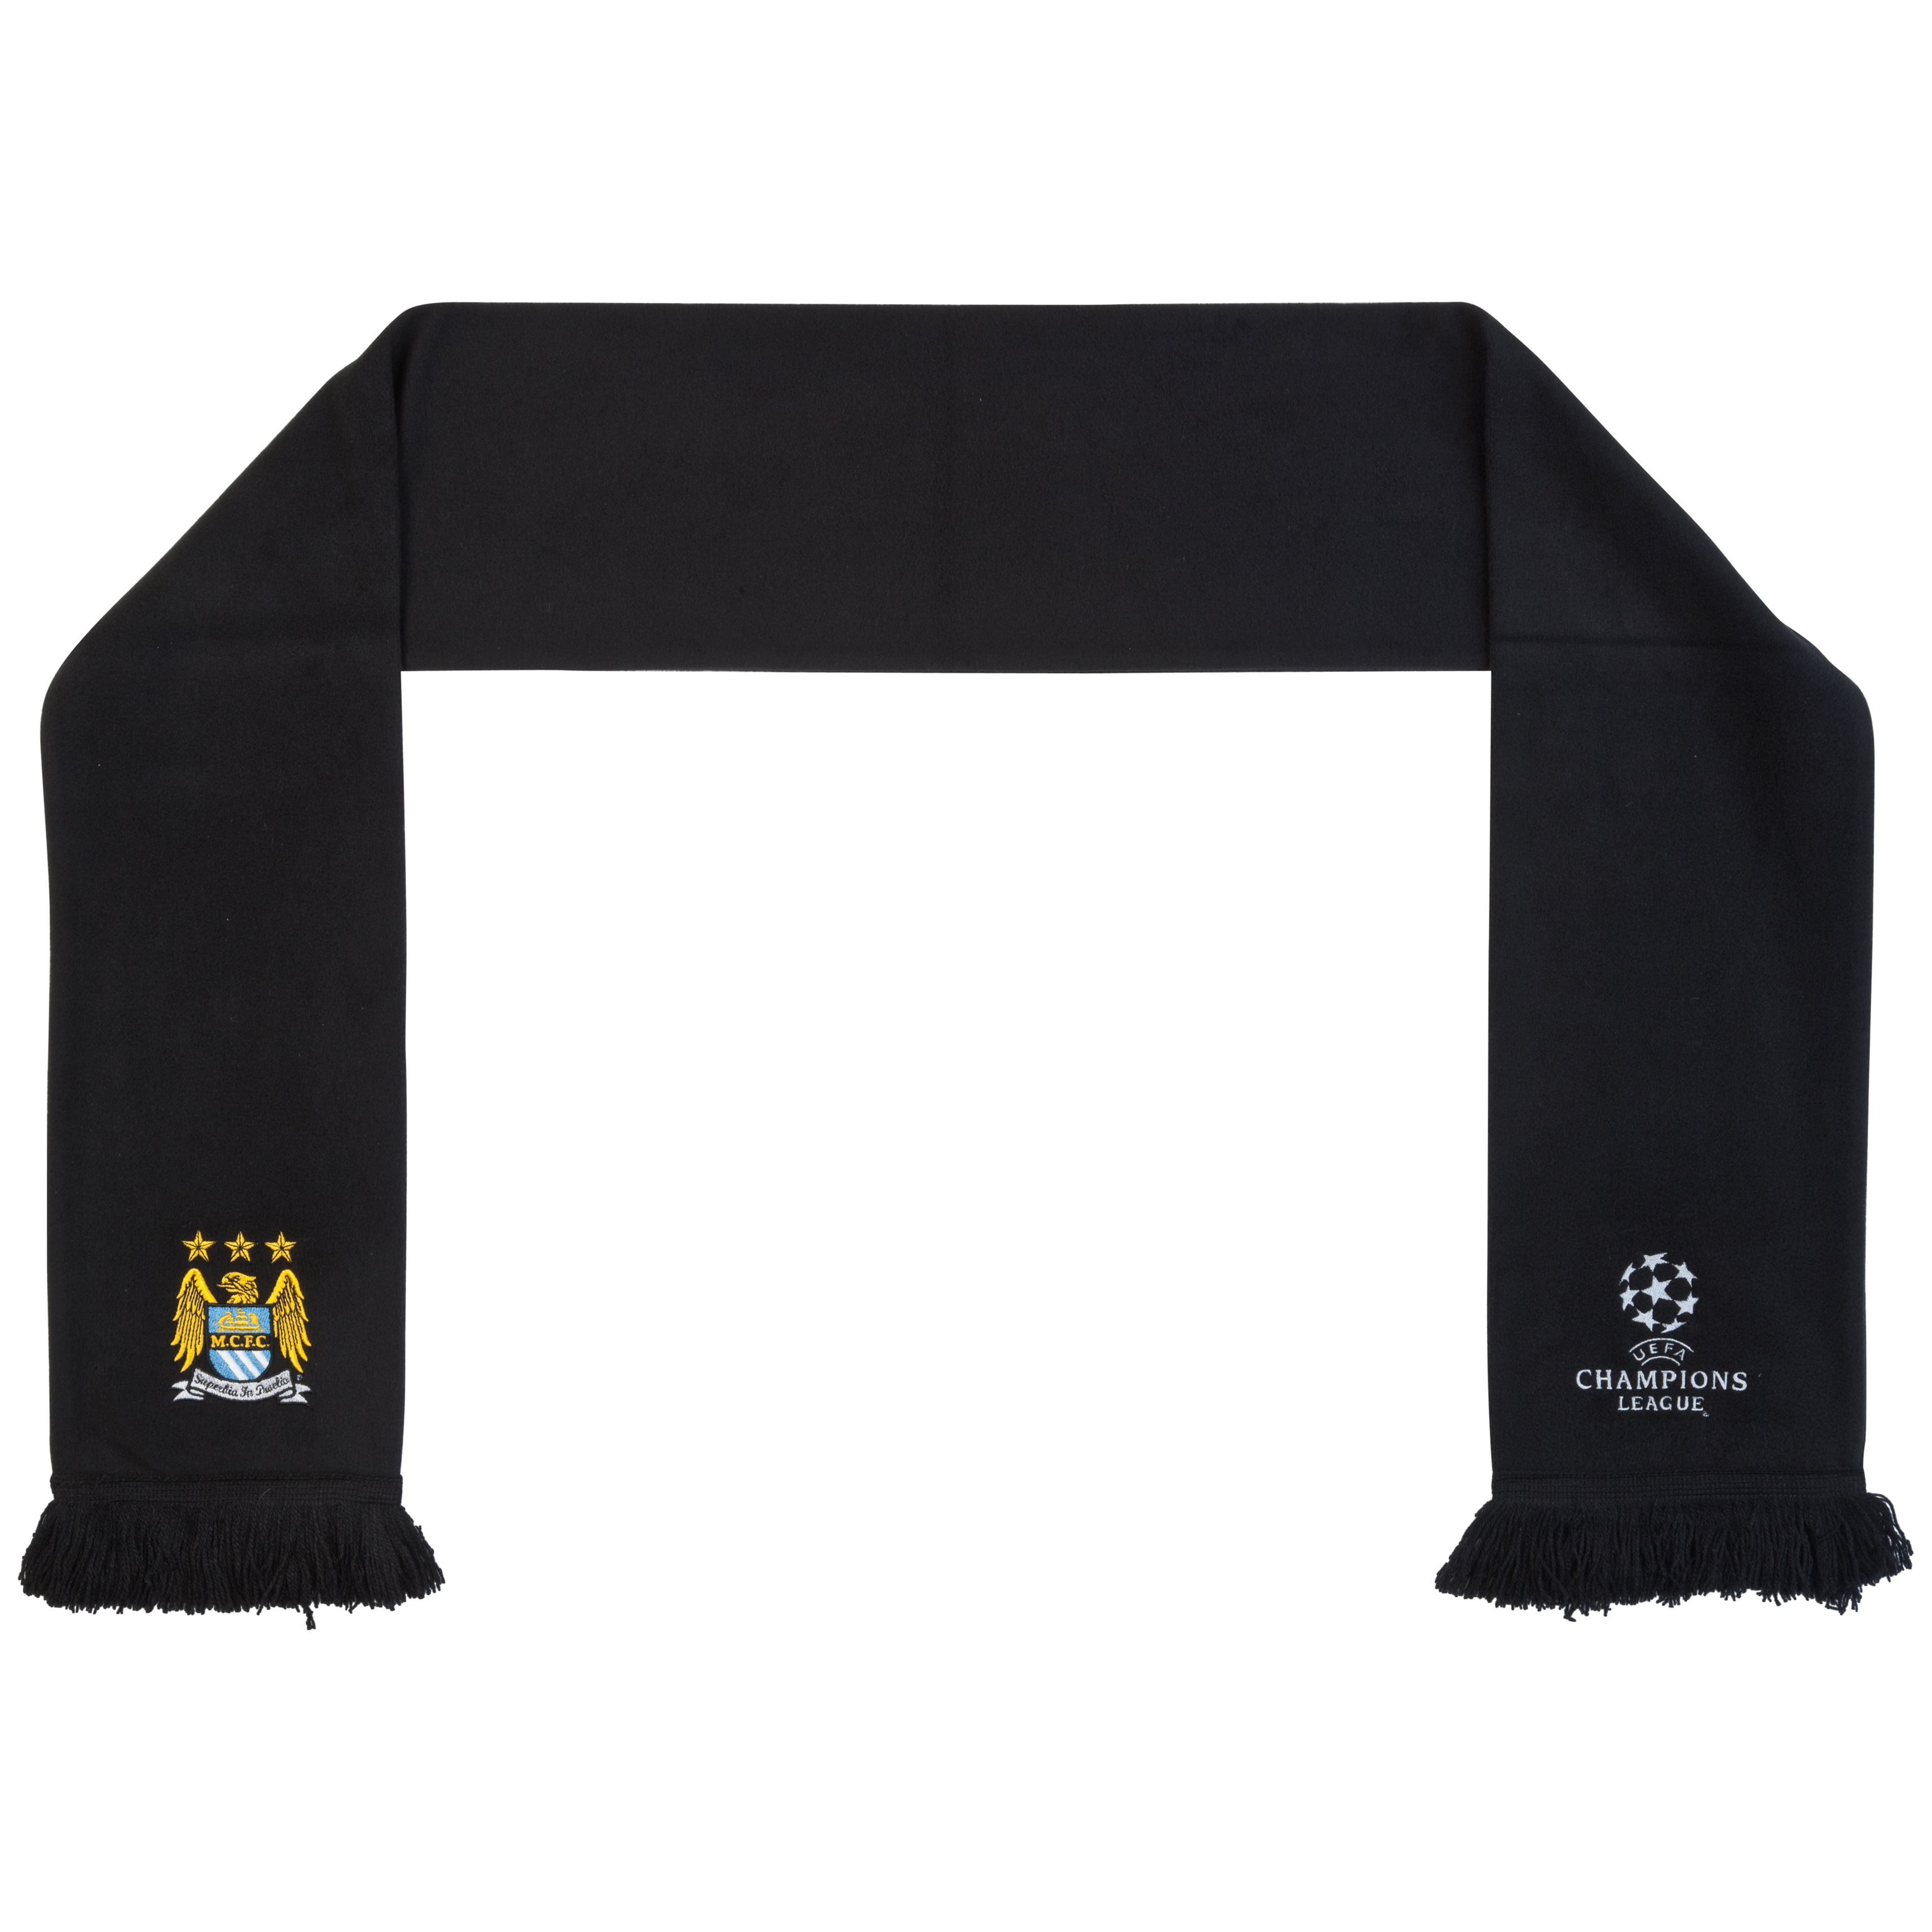 Manchester City UEFA Champions League Embroidered Classic Fleece Scarf - Black